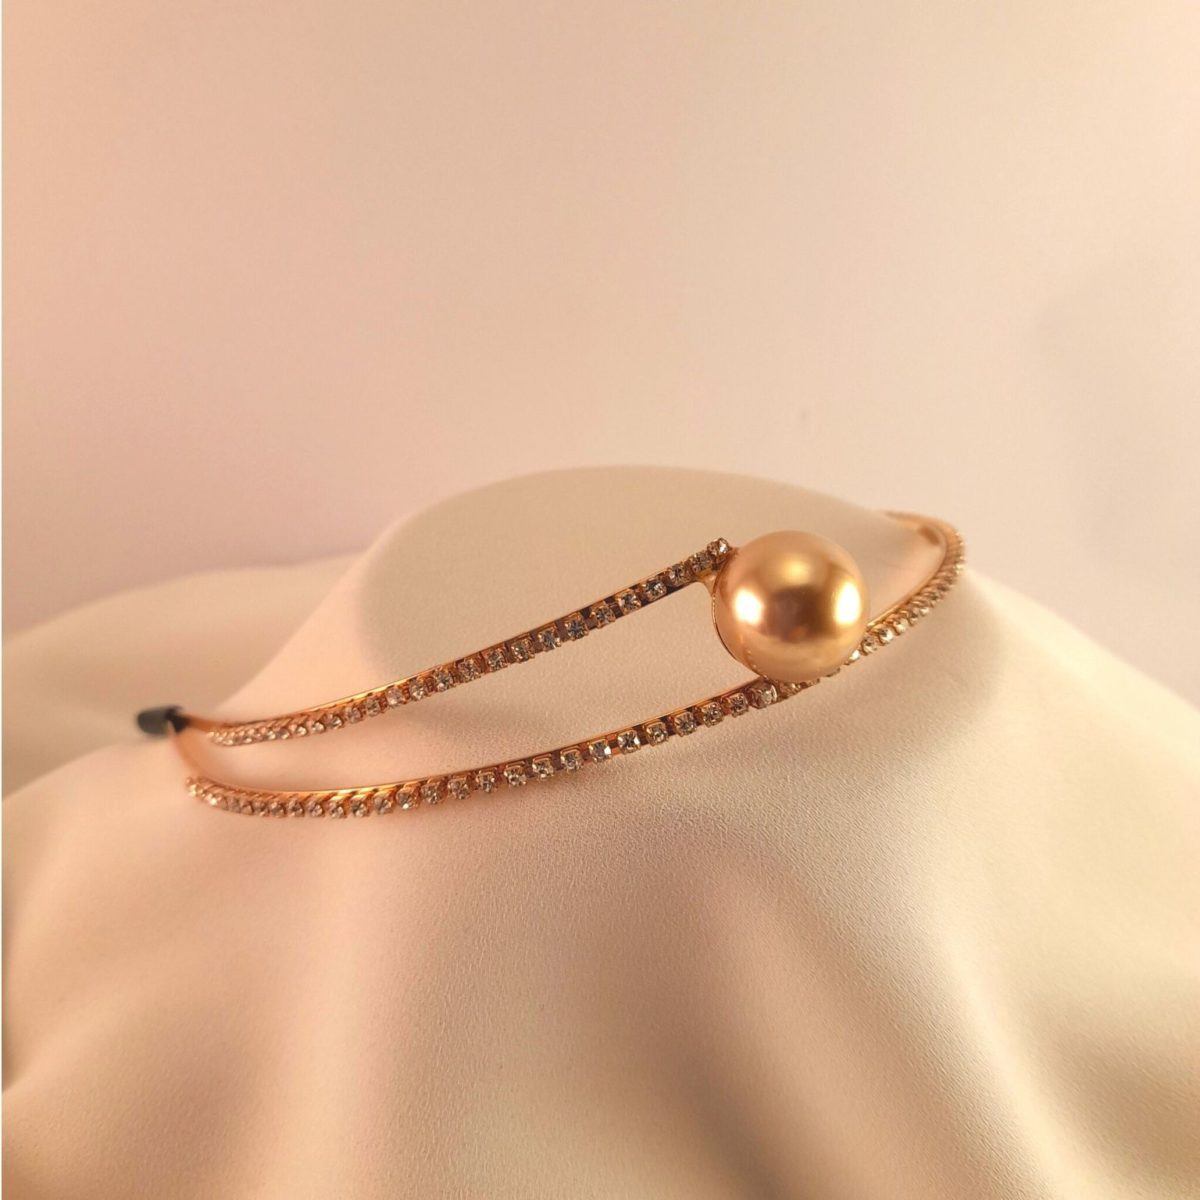 Gold Headband With 2 Straps Of Diamonds And A Pearl